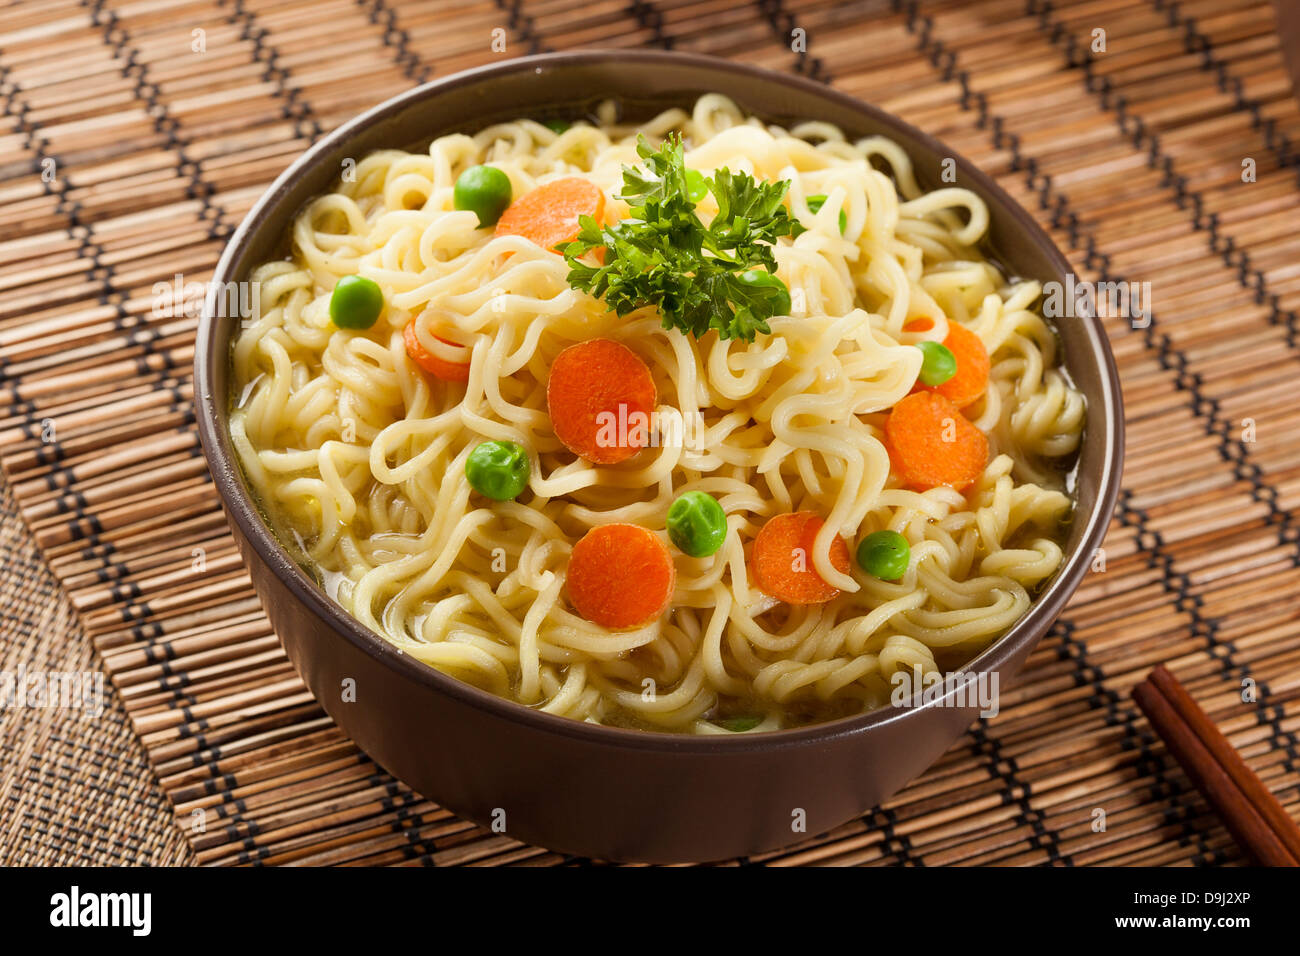 Homemade Quick Ramen Noodles with carrots and peas - Stock Image